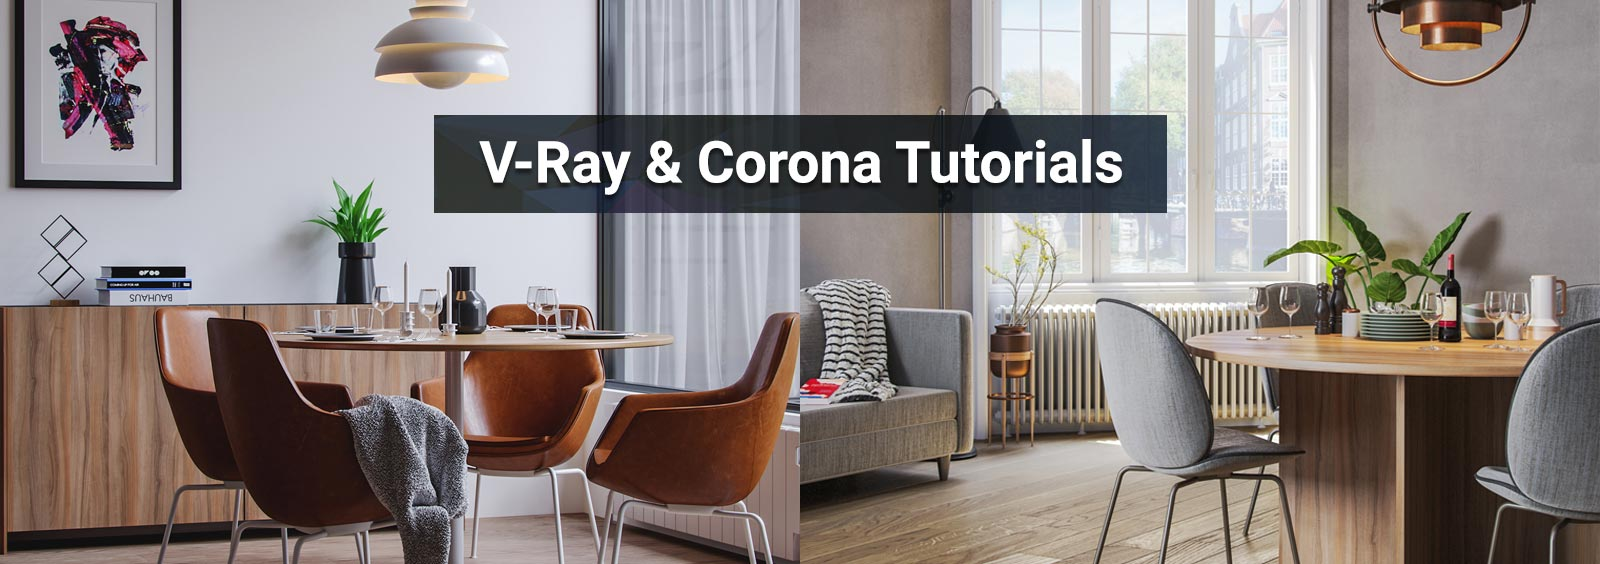 vray-and-corona-render-3d-scene-tutorials-watch